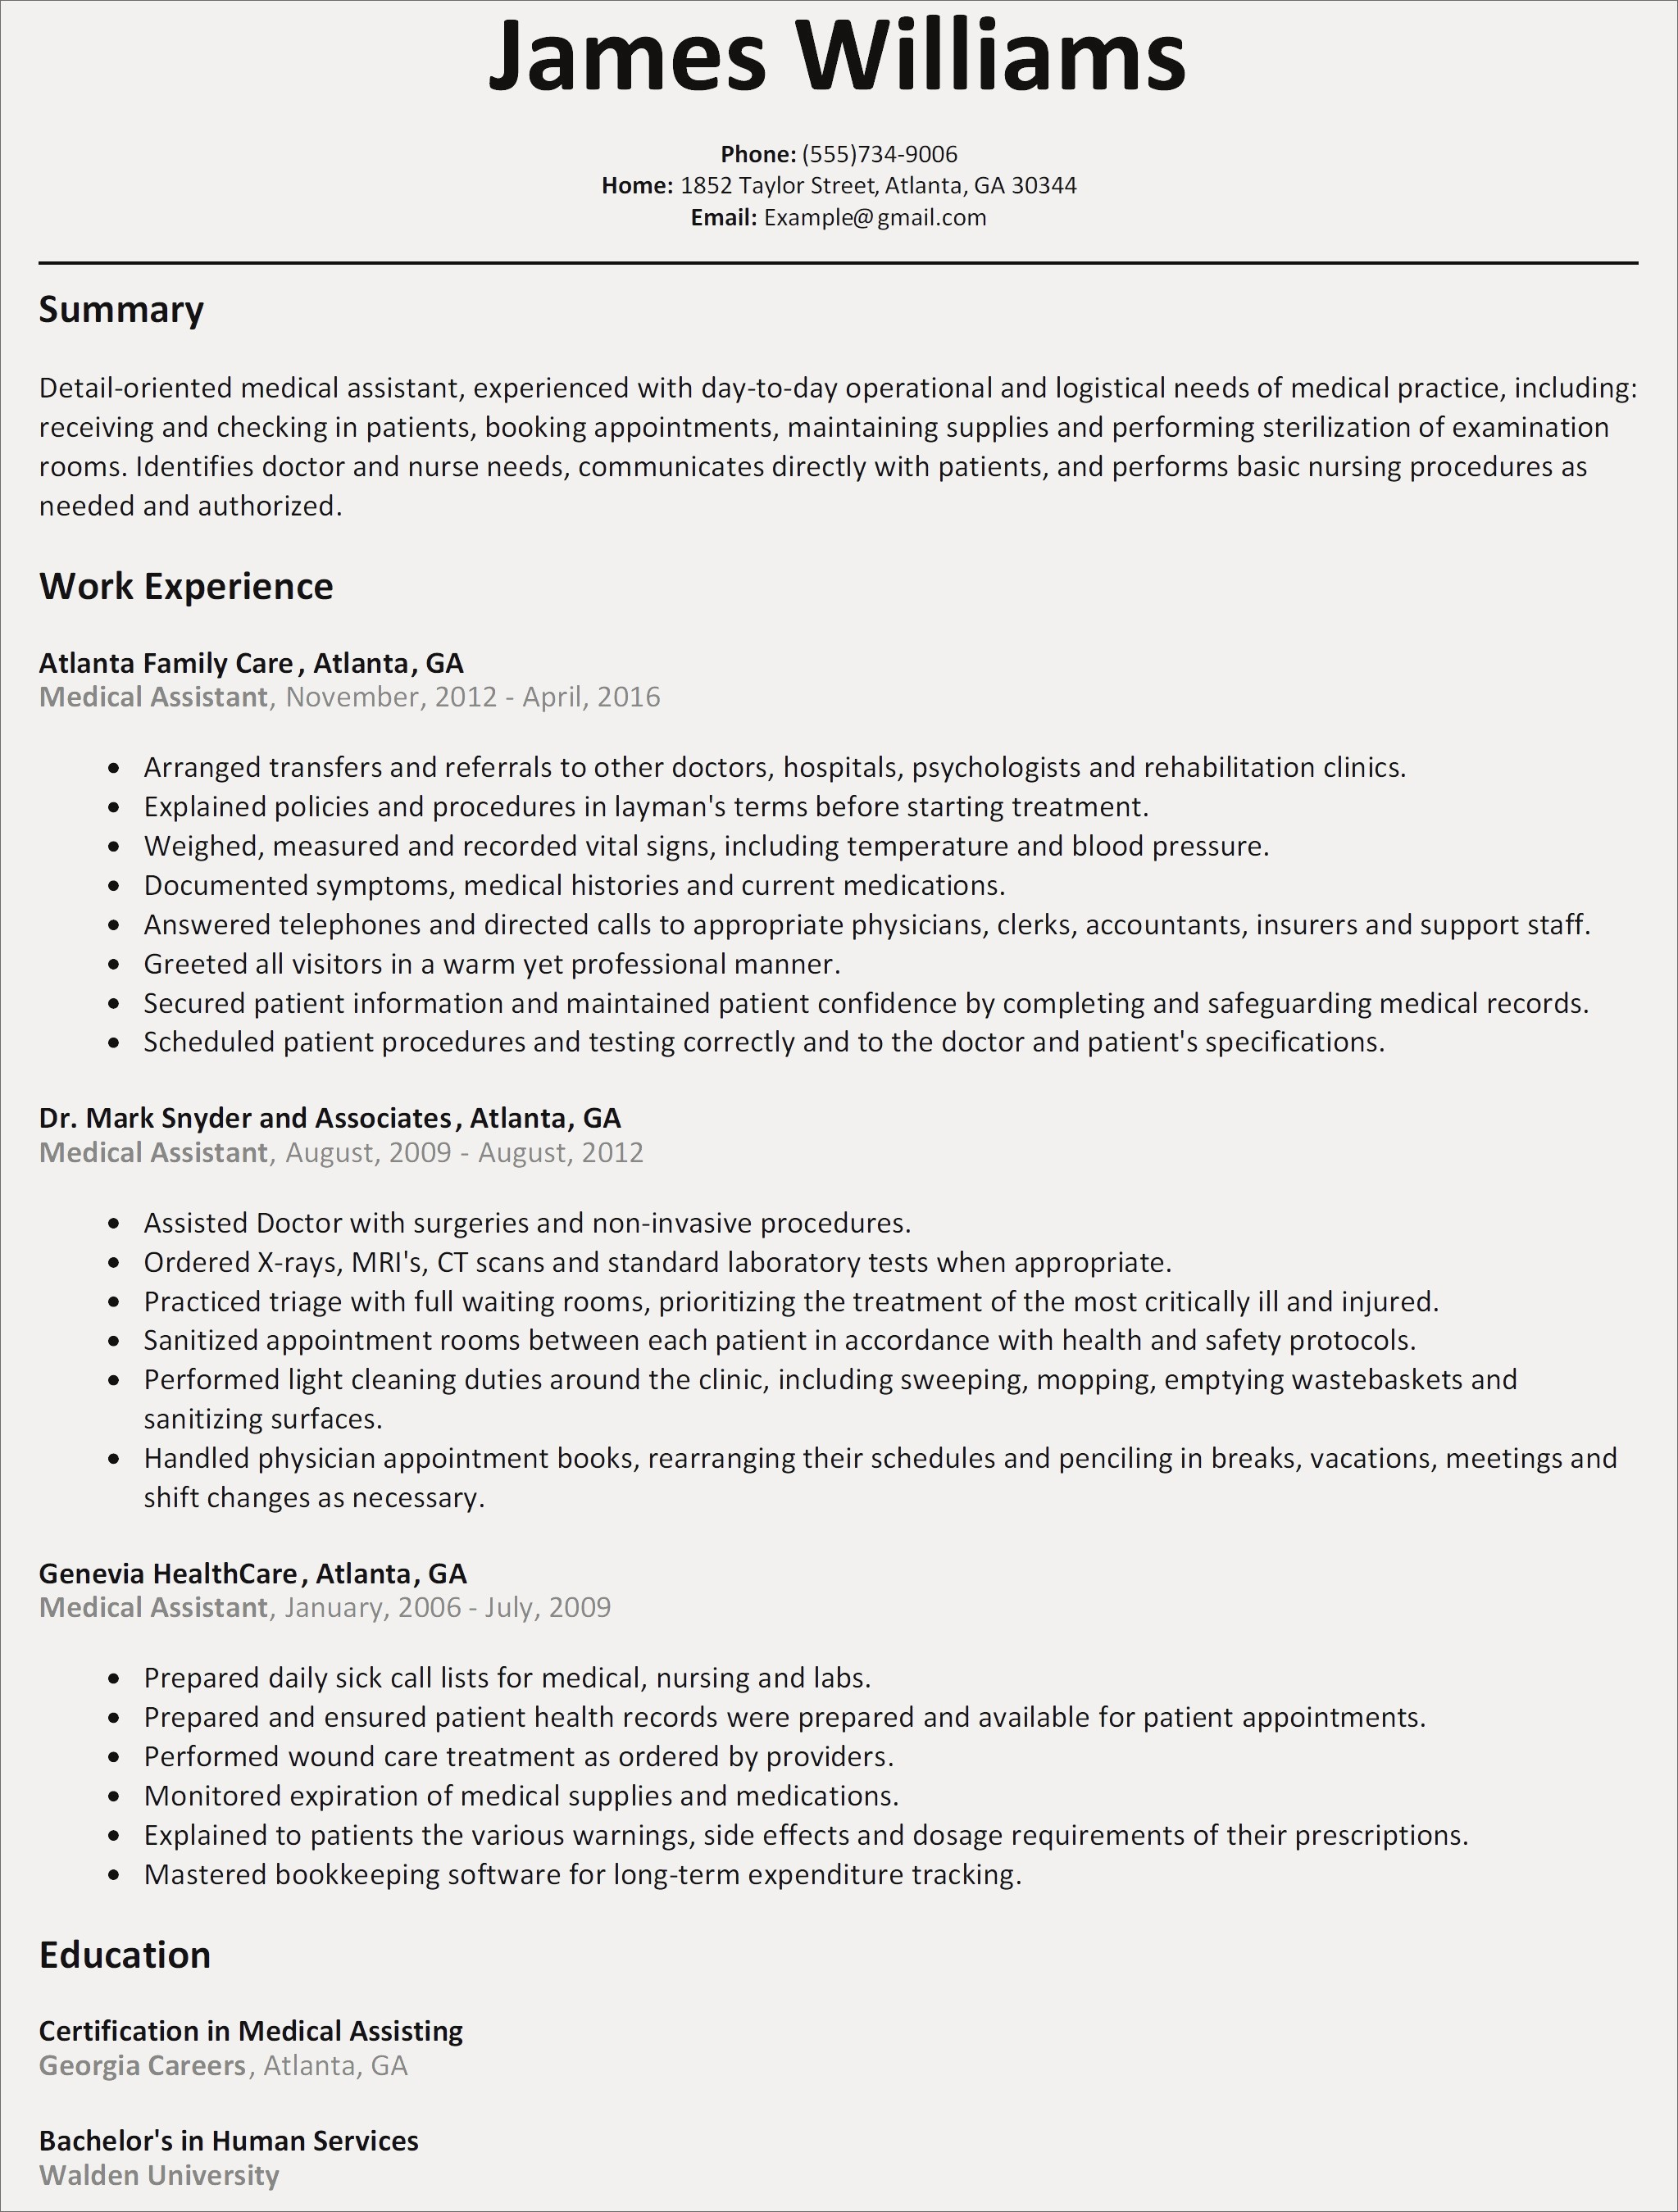 professor resume template example-Sample Resume For Adjunct Professor Position Best Academic Resume Examples Awesome Resume Template Free Word New Od 15-q